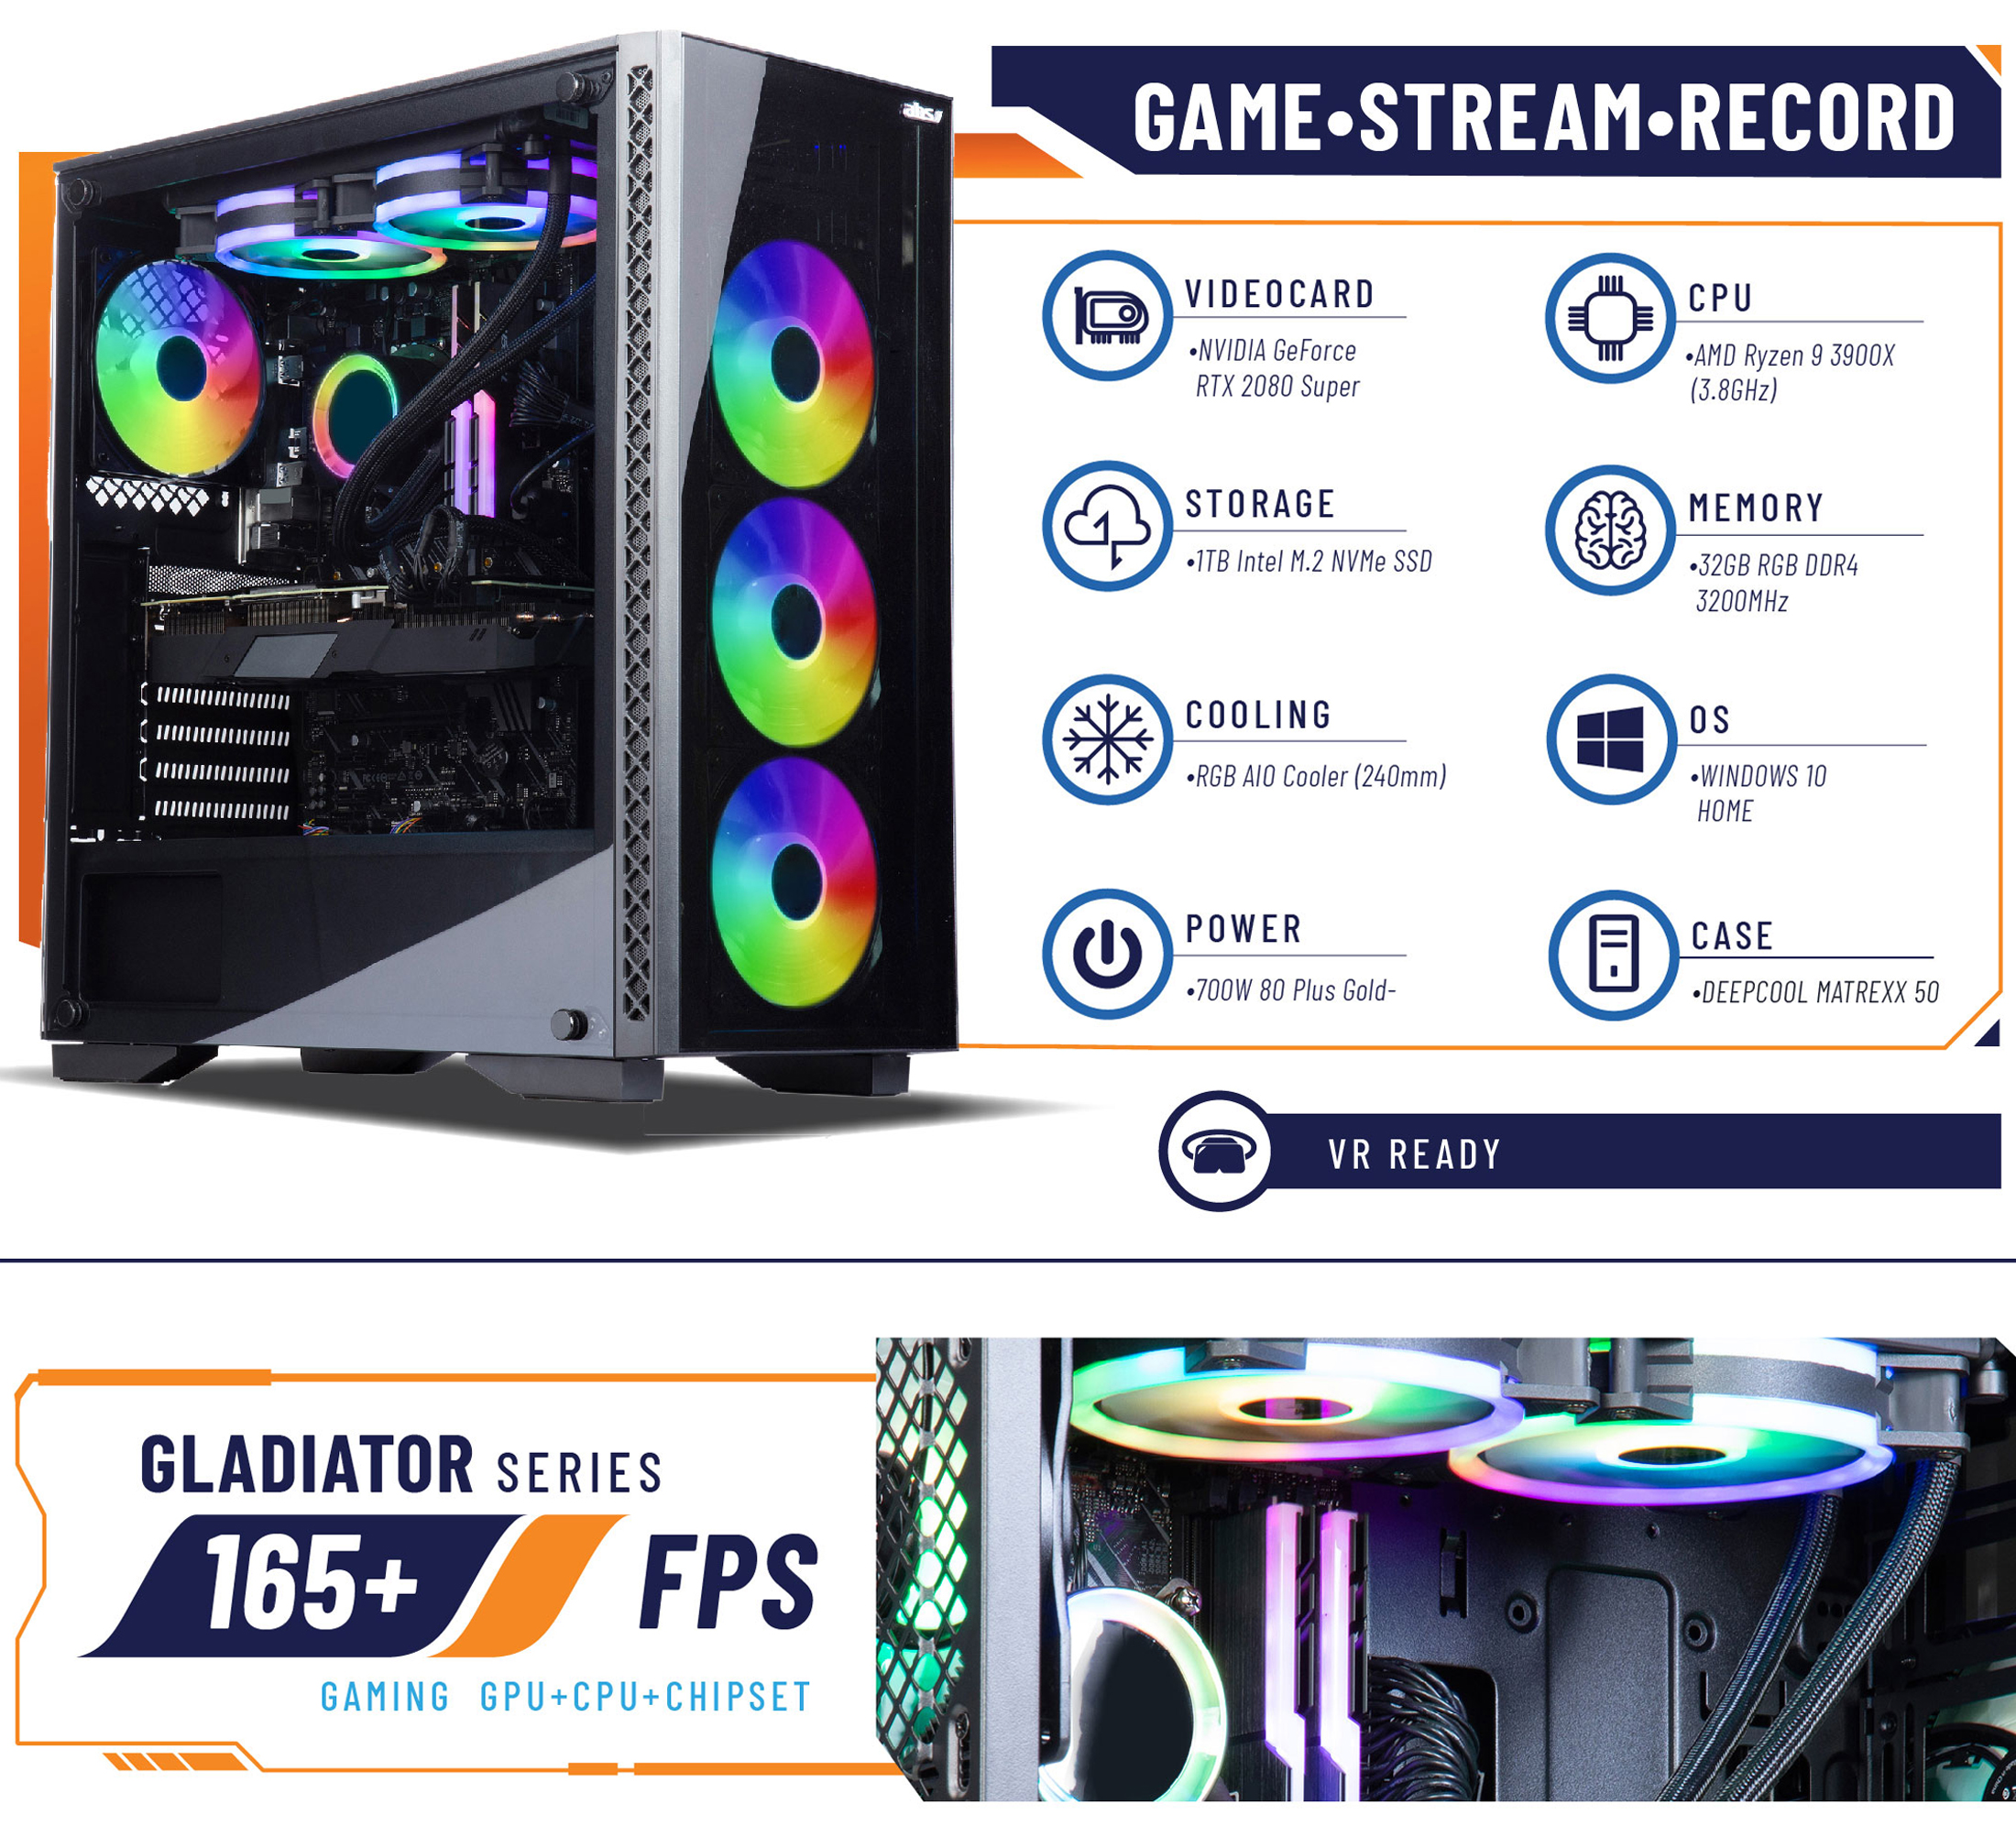 ABS Gladiator Gaming PC